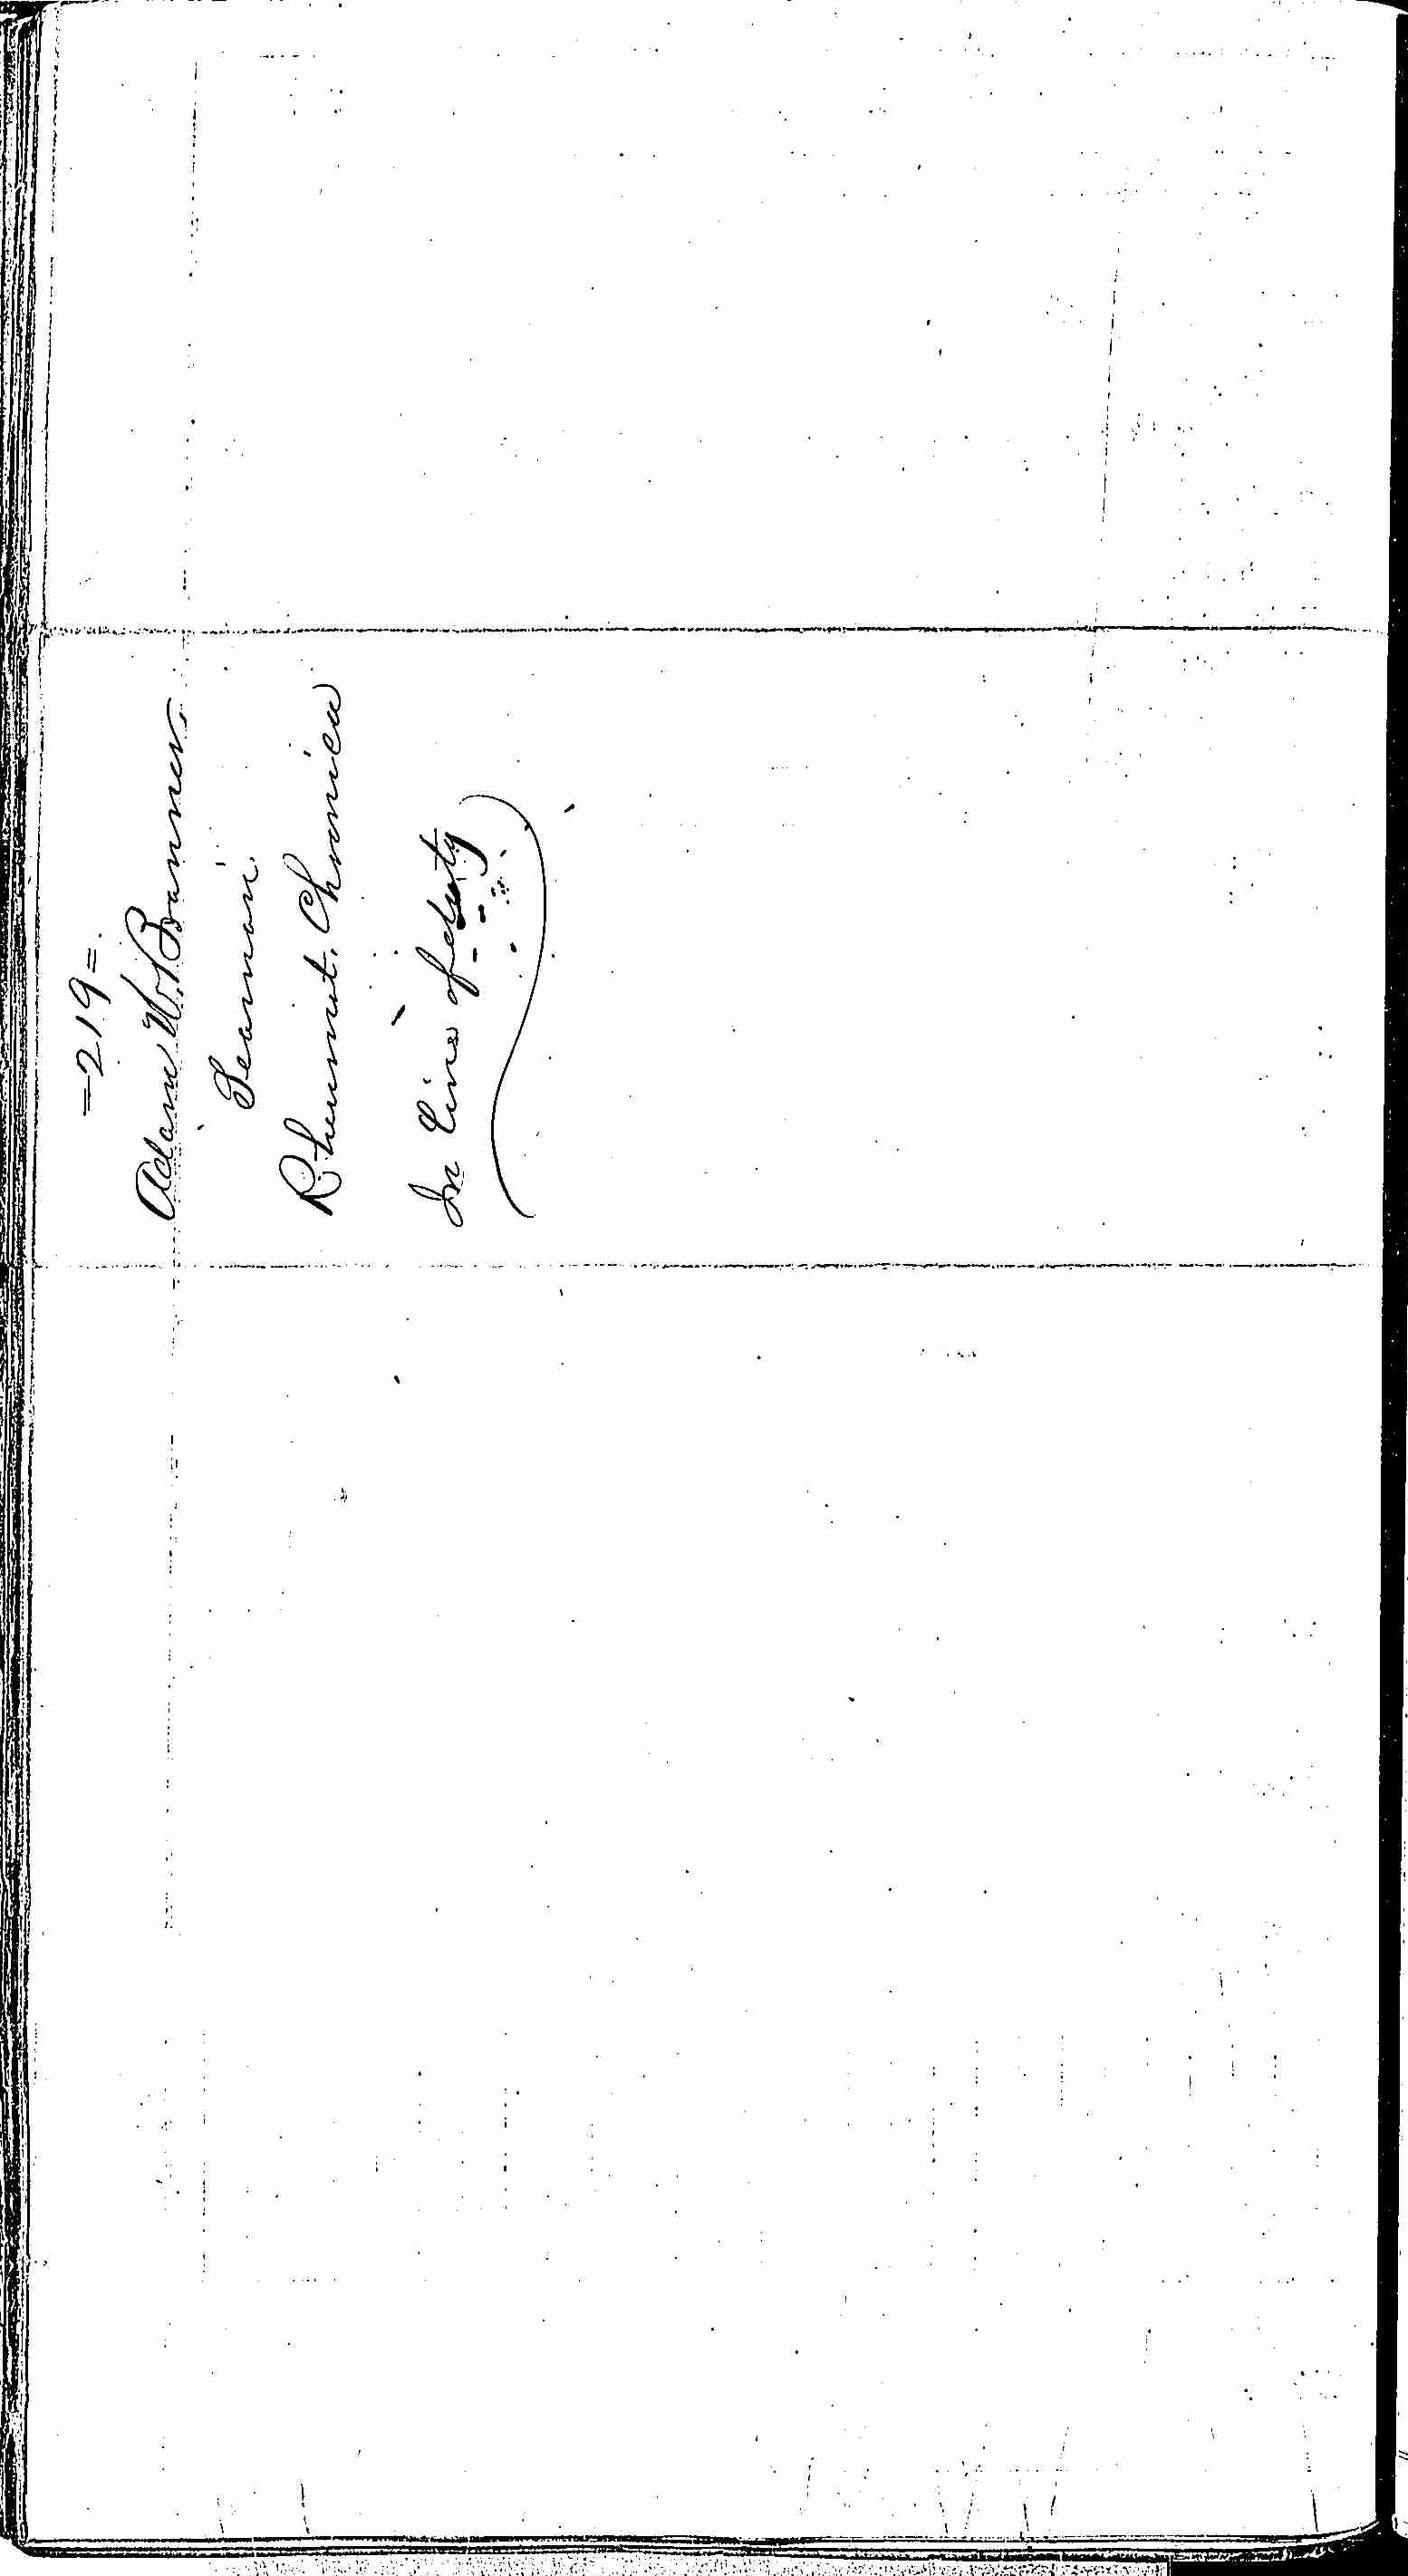 Entry for Adam M. Branner (page 2 of 2) in the log Hospital Tickets and Case Papers - Naval Hospital - Washington, D.C. - 1866-68